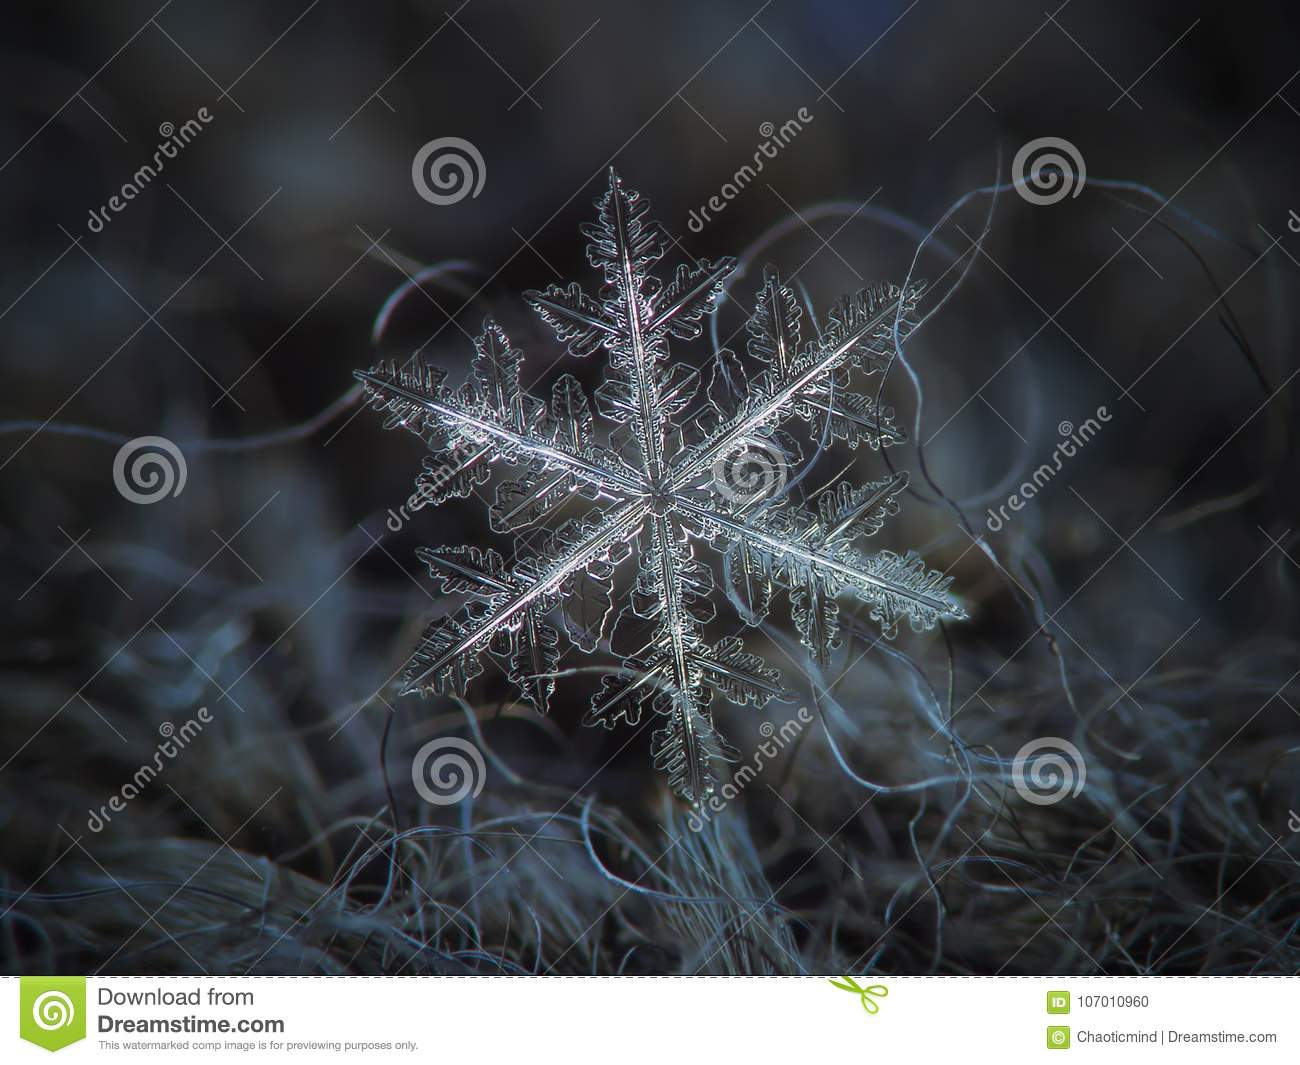 Real snowflake glowing on dark textured background